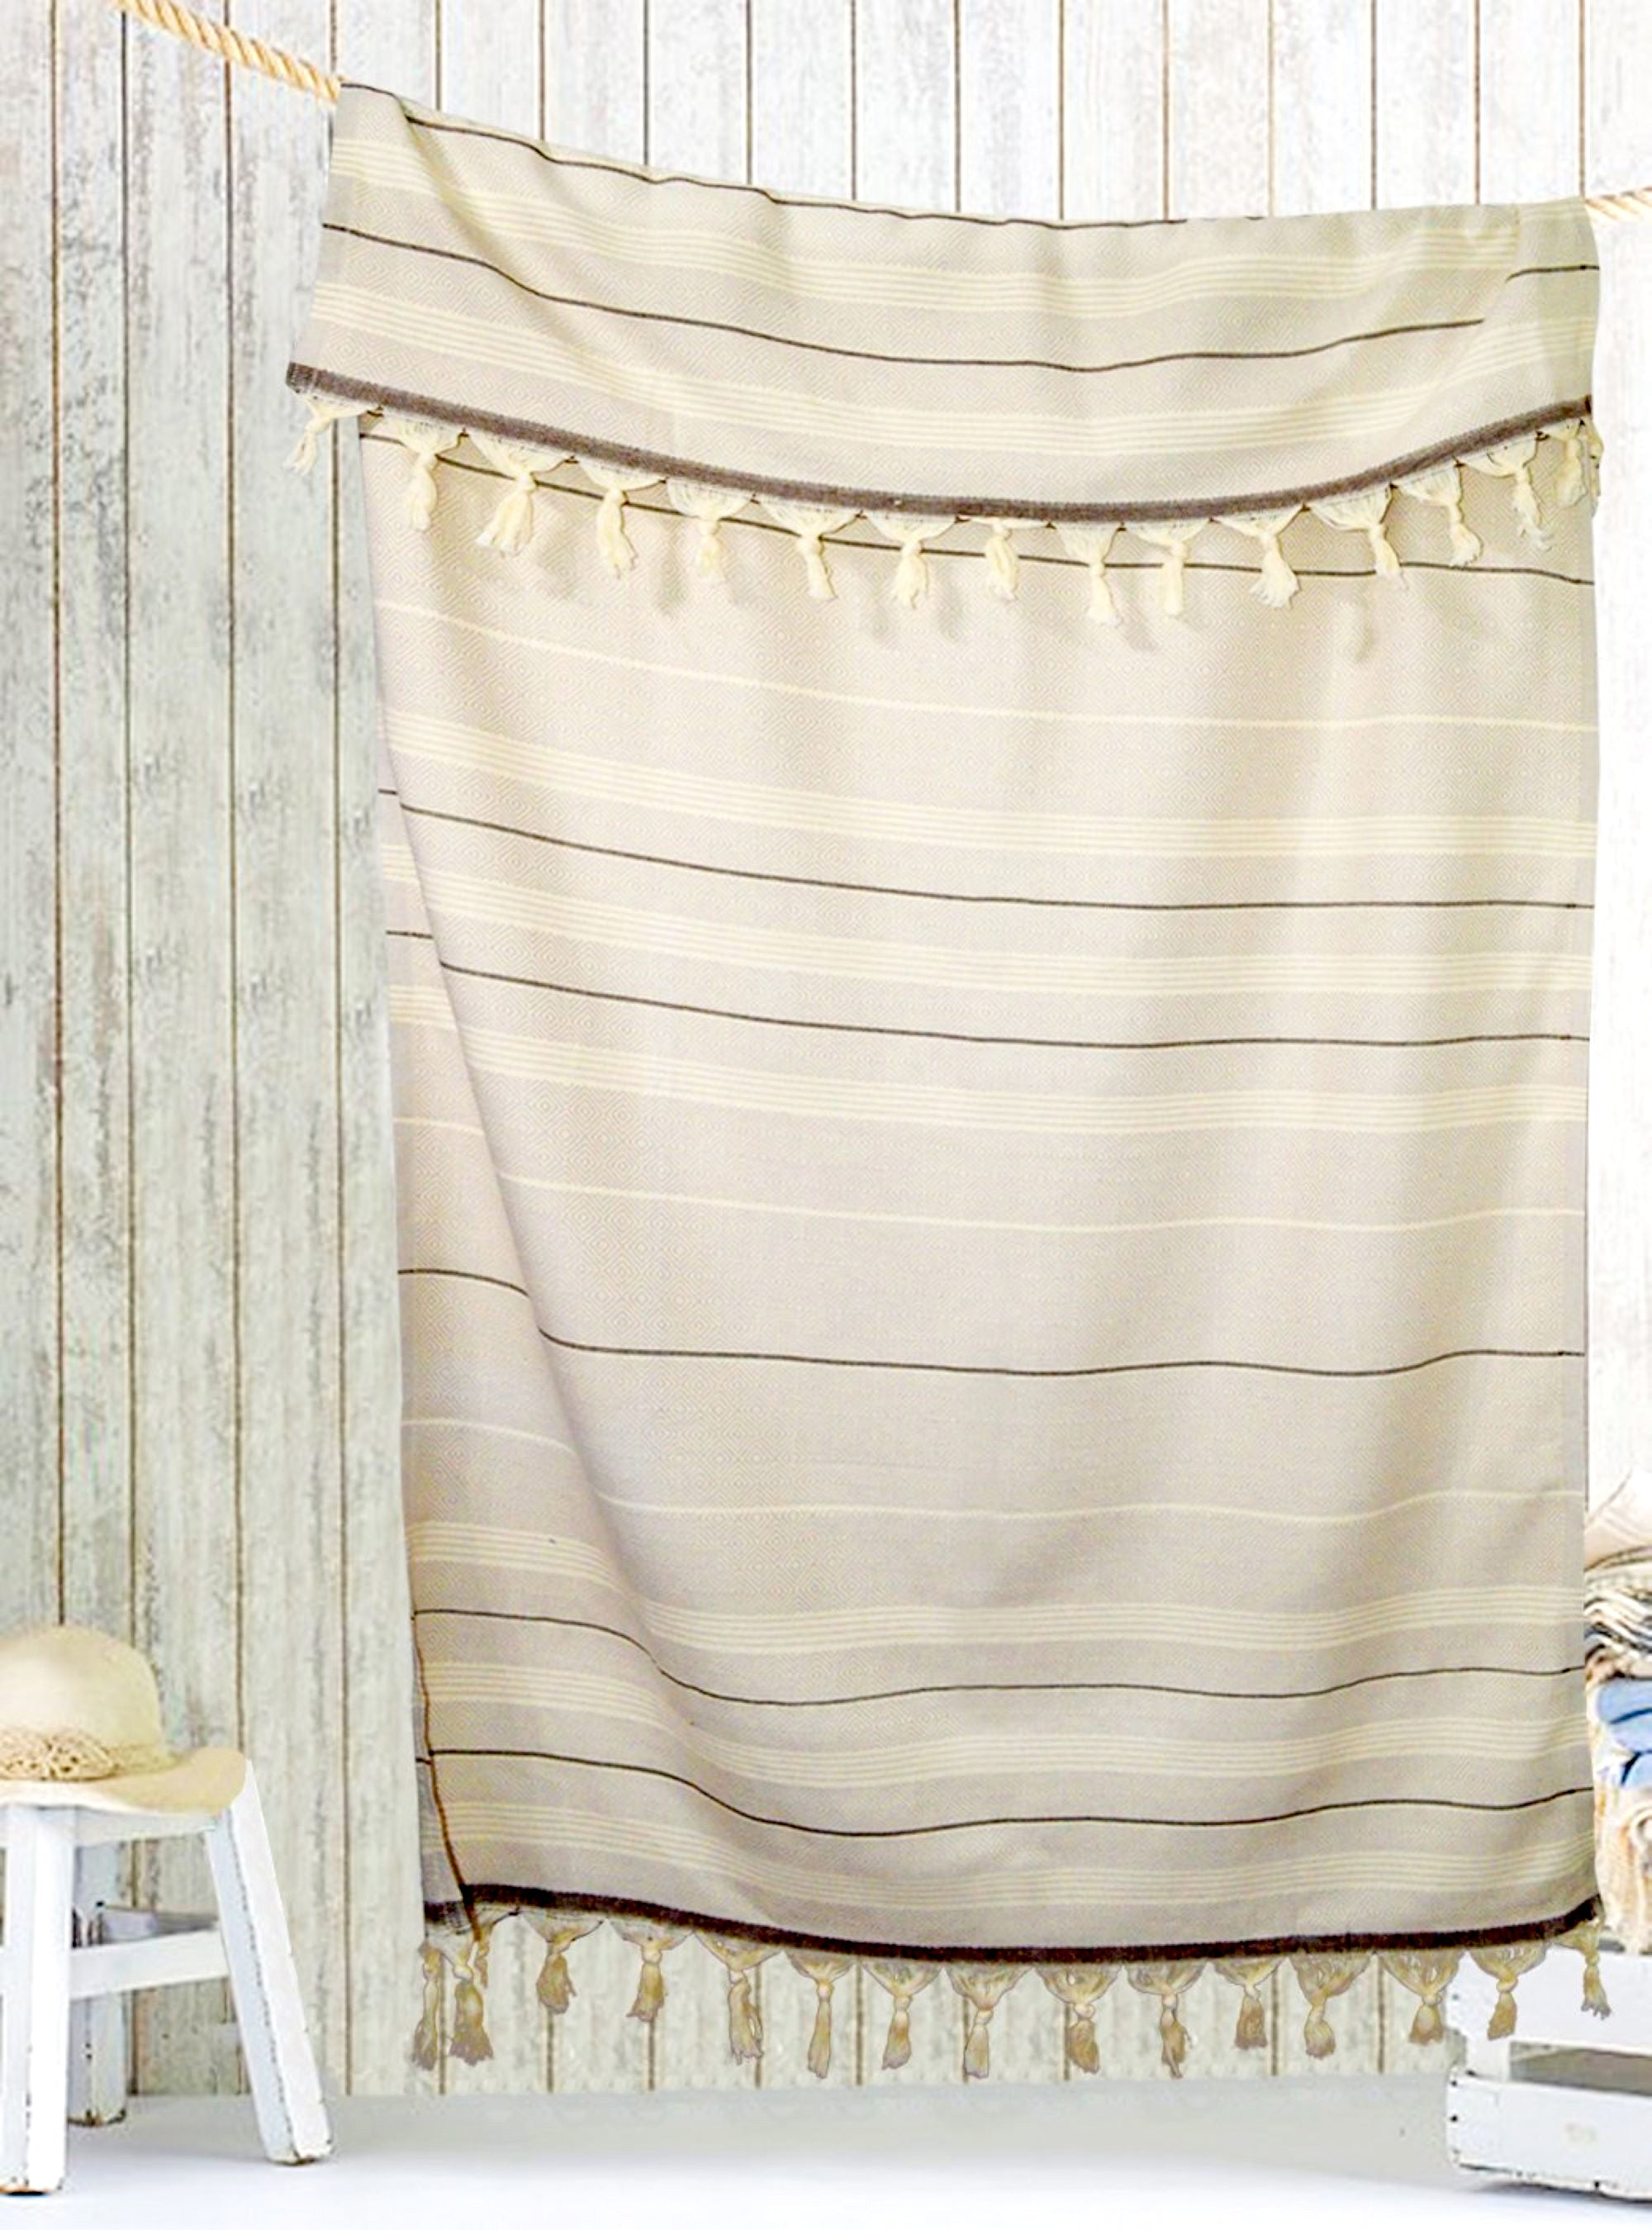 Turkish bath towel Beige/Brown, hand-embroidered, pure cotton, with a hand-knotted fringe at both ends and long stripes pattern.